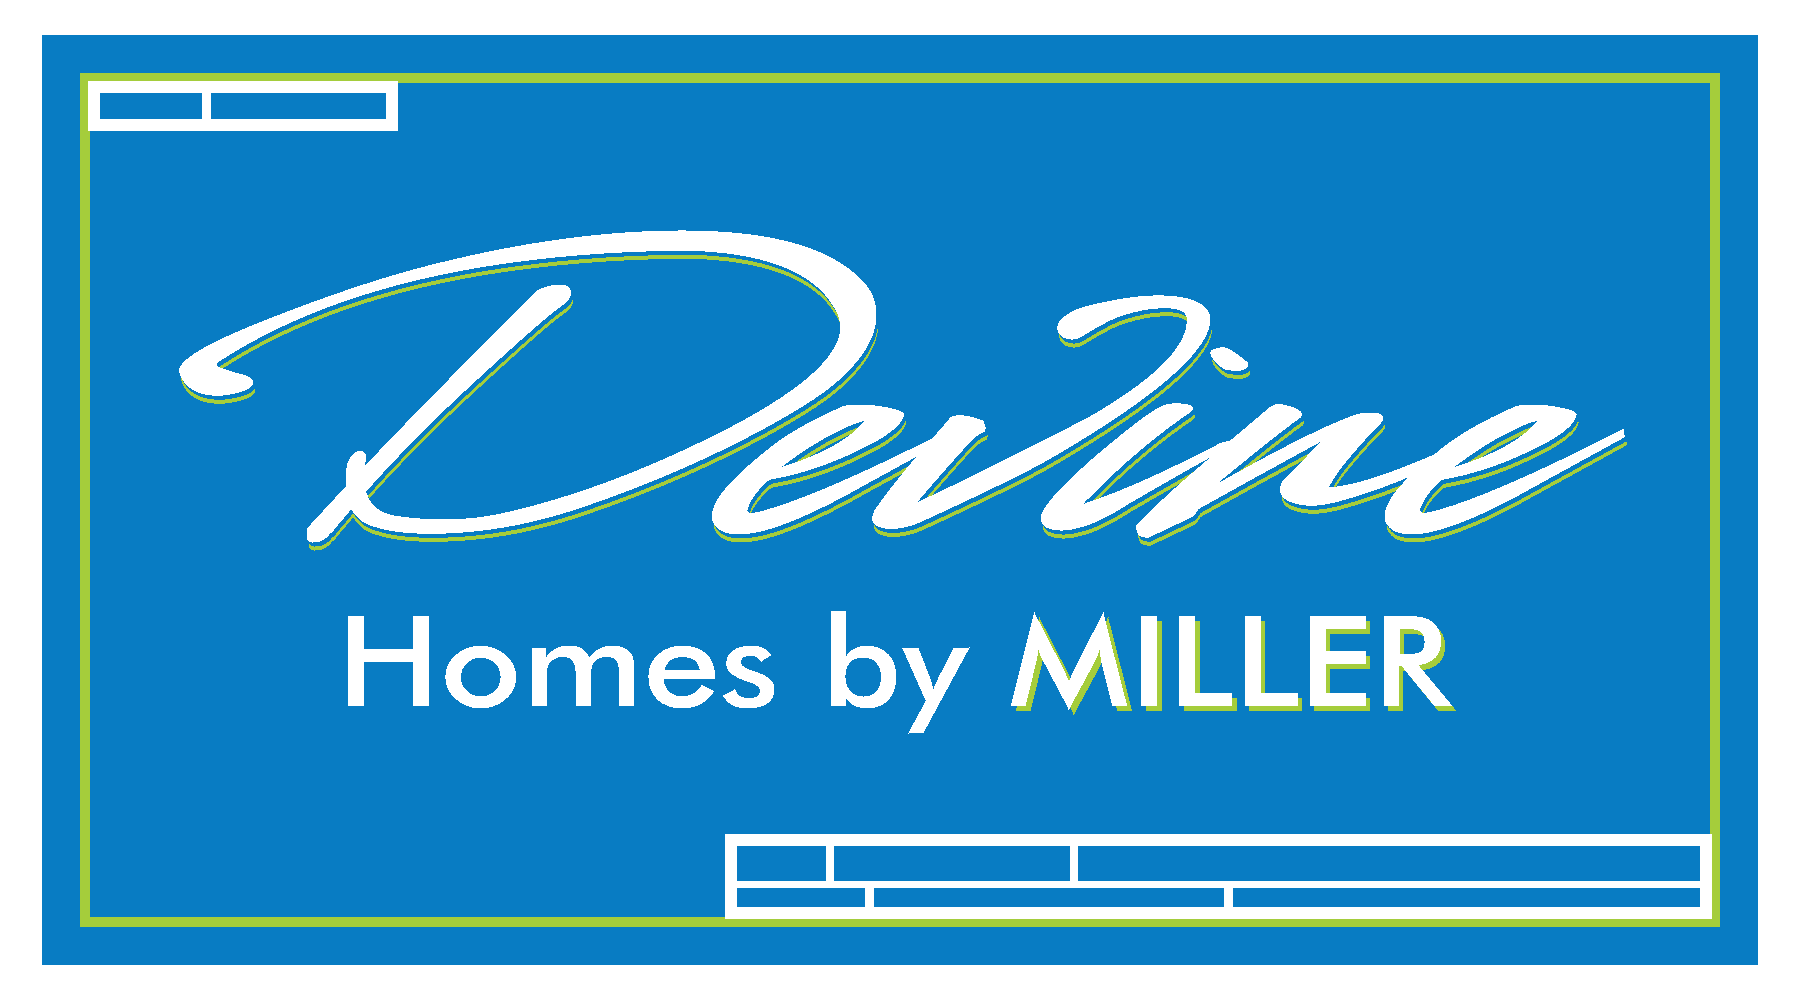 devine homes by miller logo blue